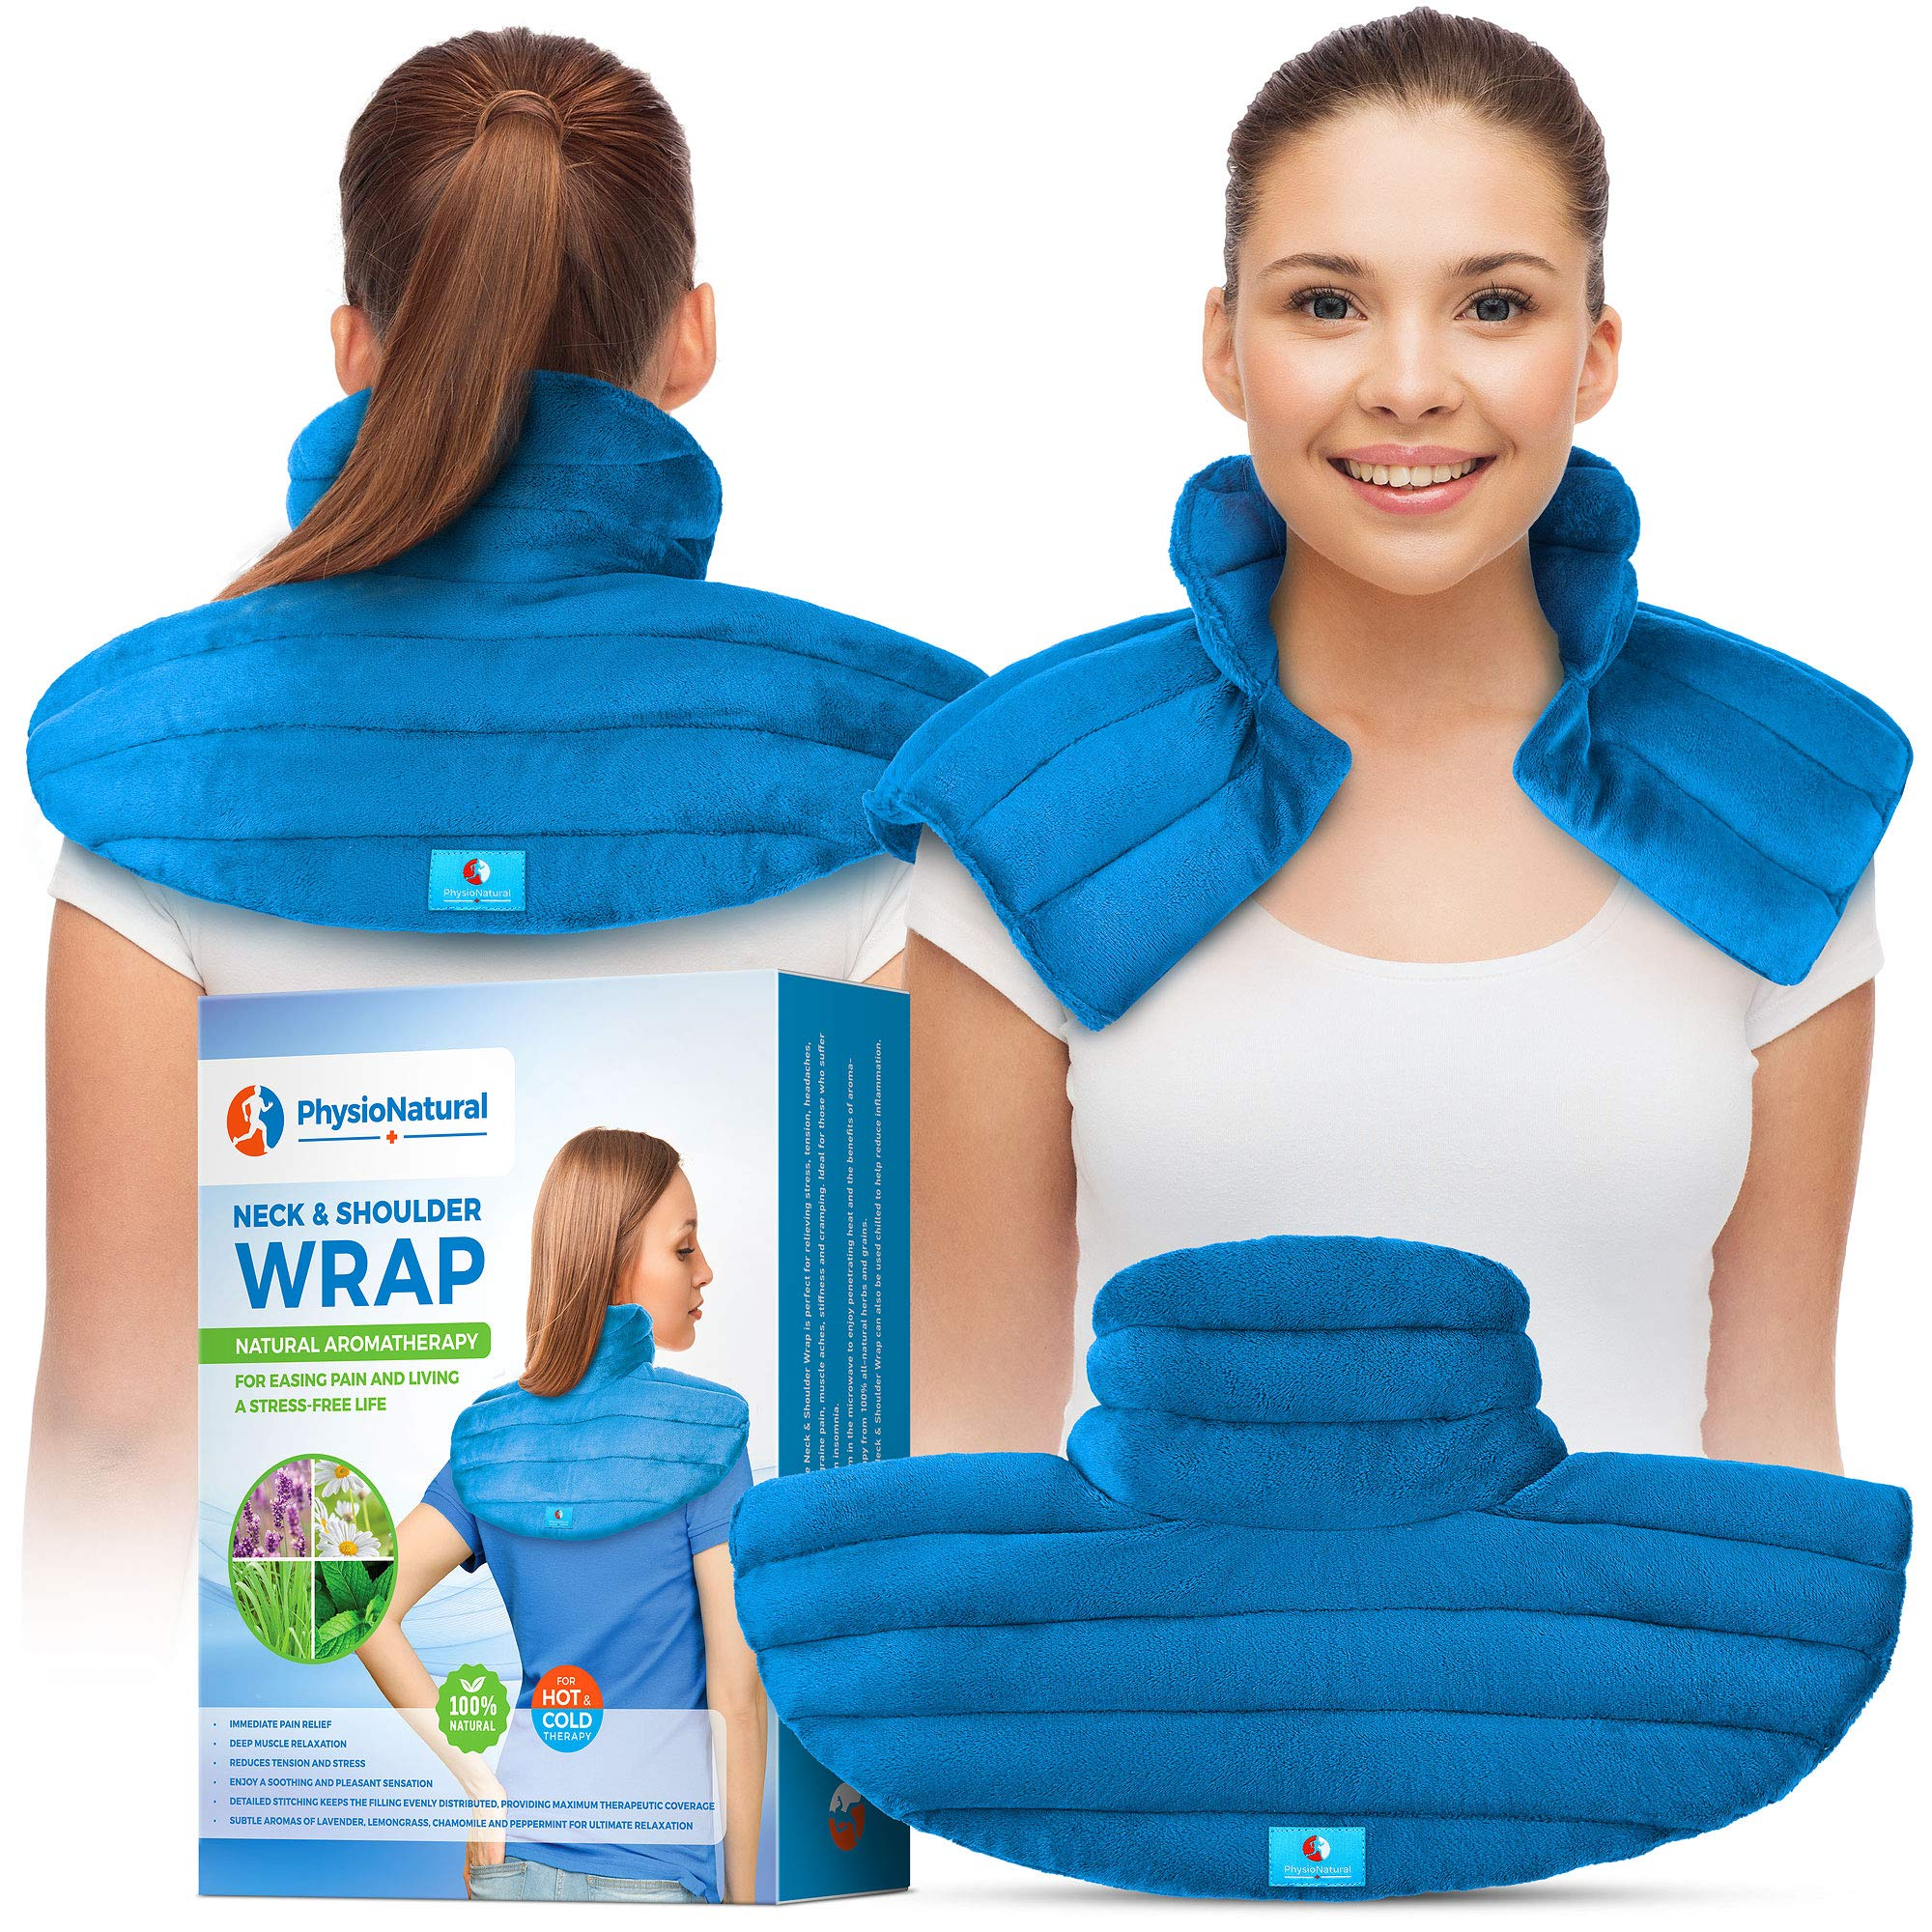 Neck and Shoulder Wrap - Instant Relief for Tension and Stress, Migraines, Headaches, Aches, Spasms, Arthritis, Stiffness, and Tightness - Deep, Penetrating Muscle Relaxation with Herbal Aromatherapy by PhysioNatural